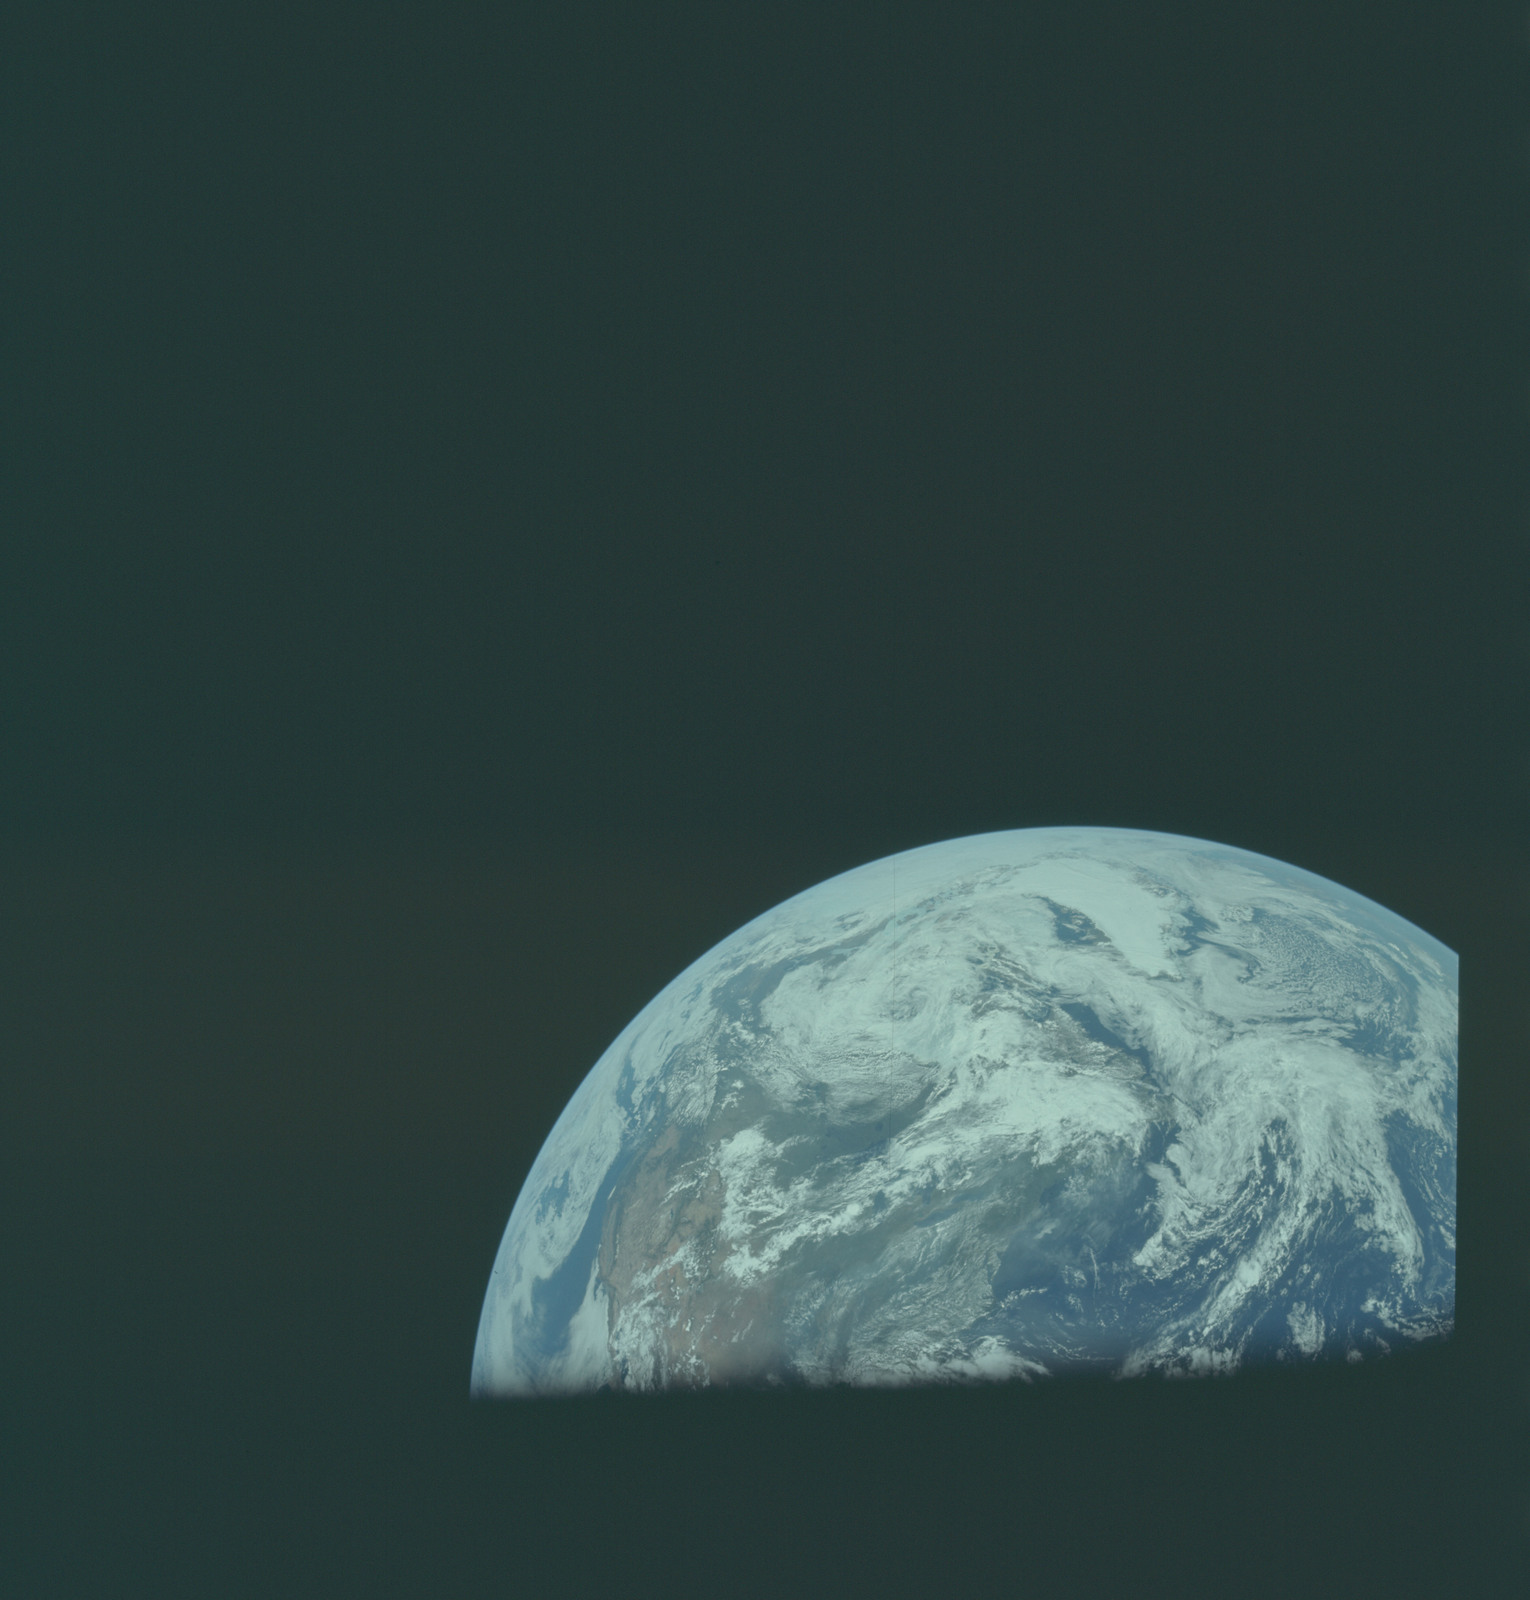 AS11-36-5323 - Apollo 11 - Apollo 11 Mission image - Earth limb